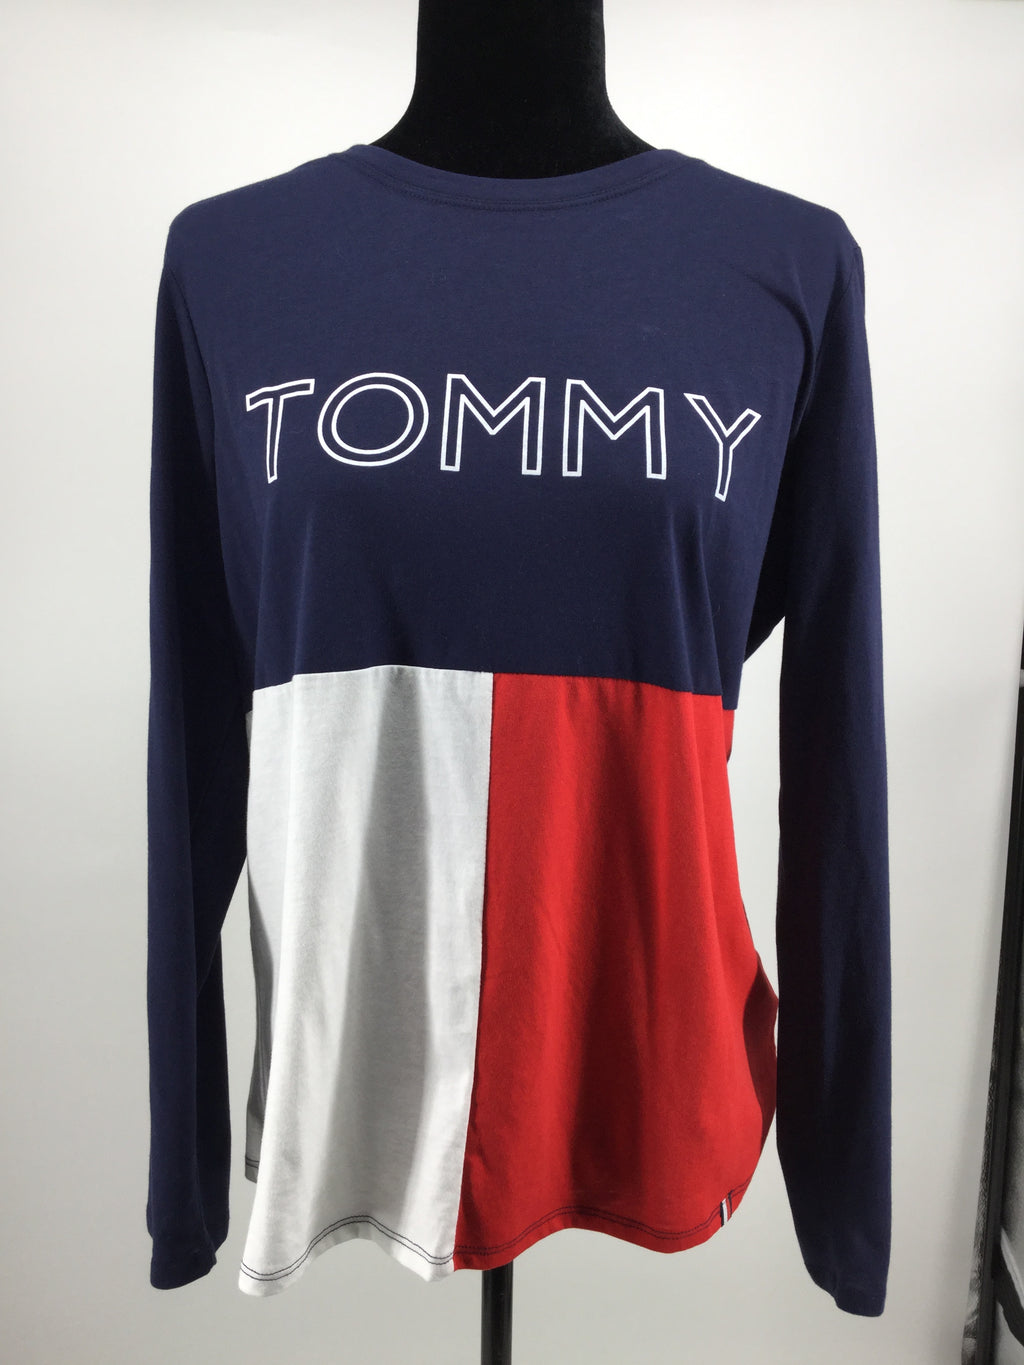 Tommy Hilfiger Top Ls Size:xl